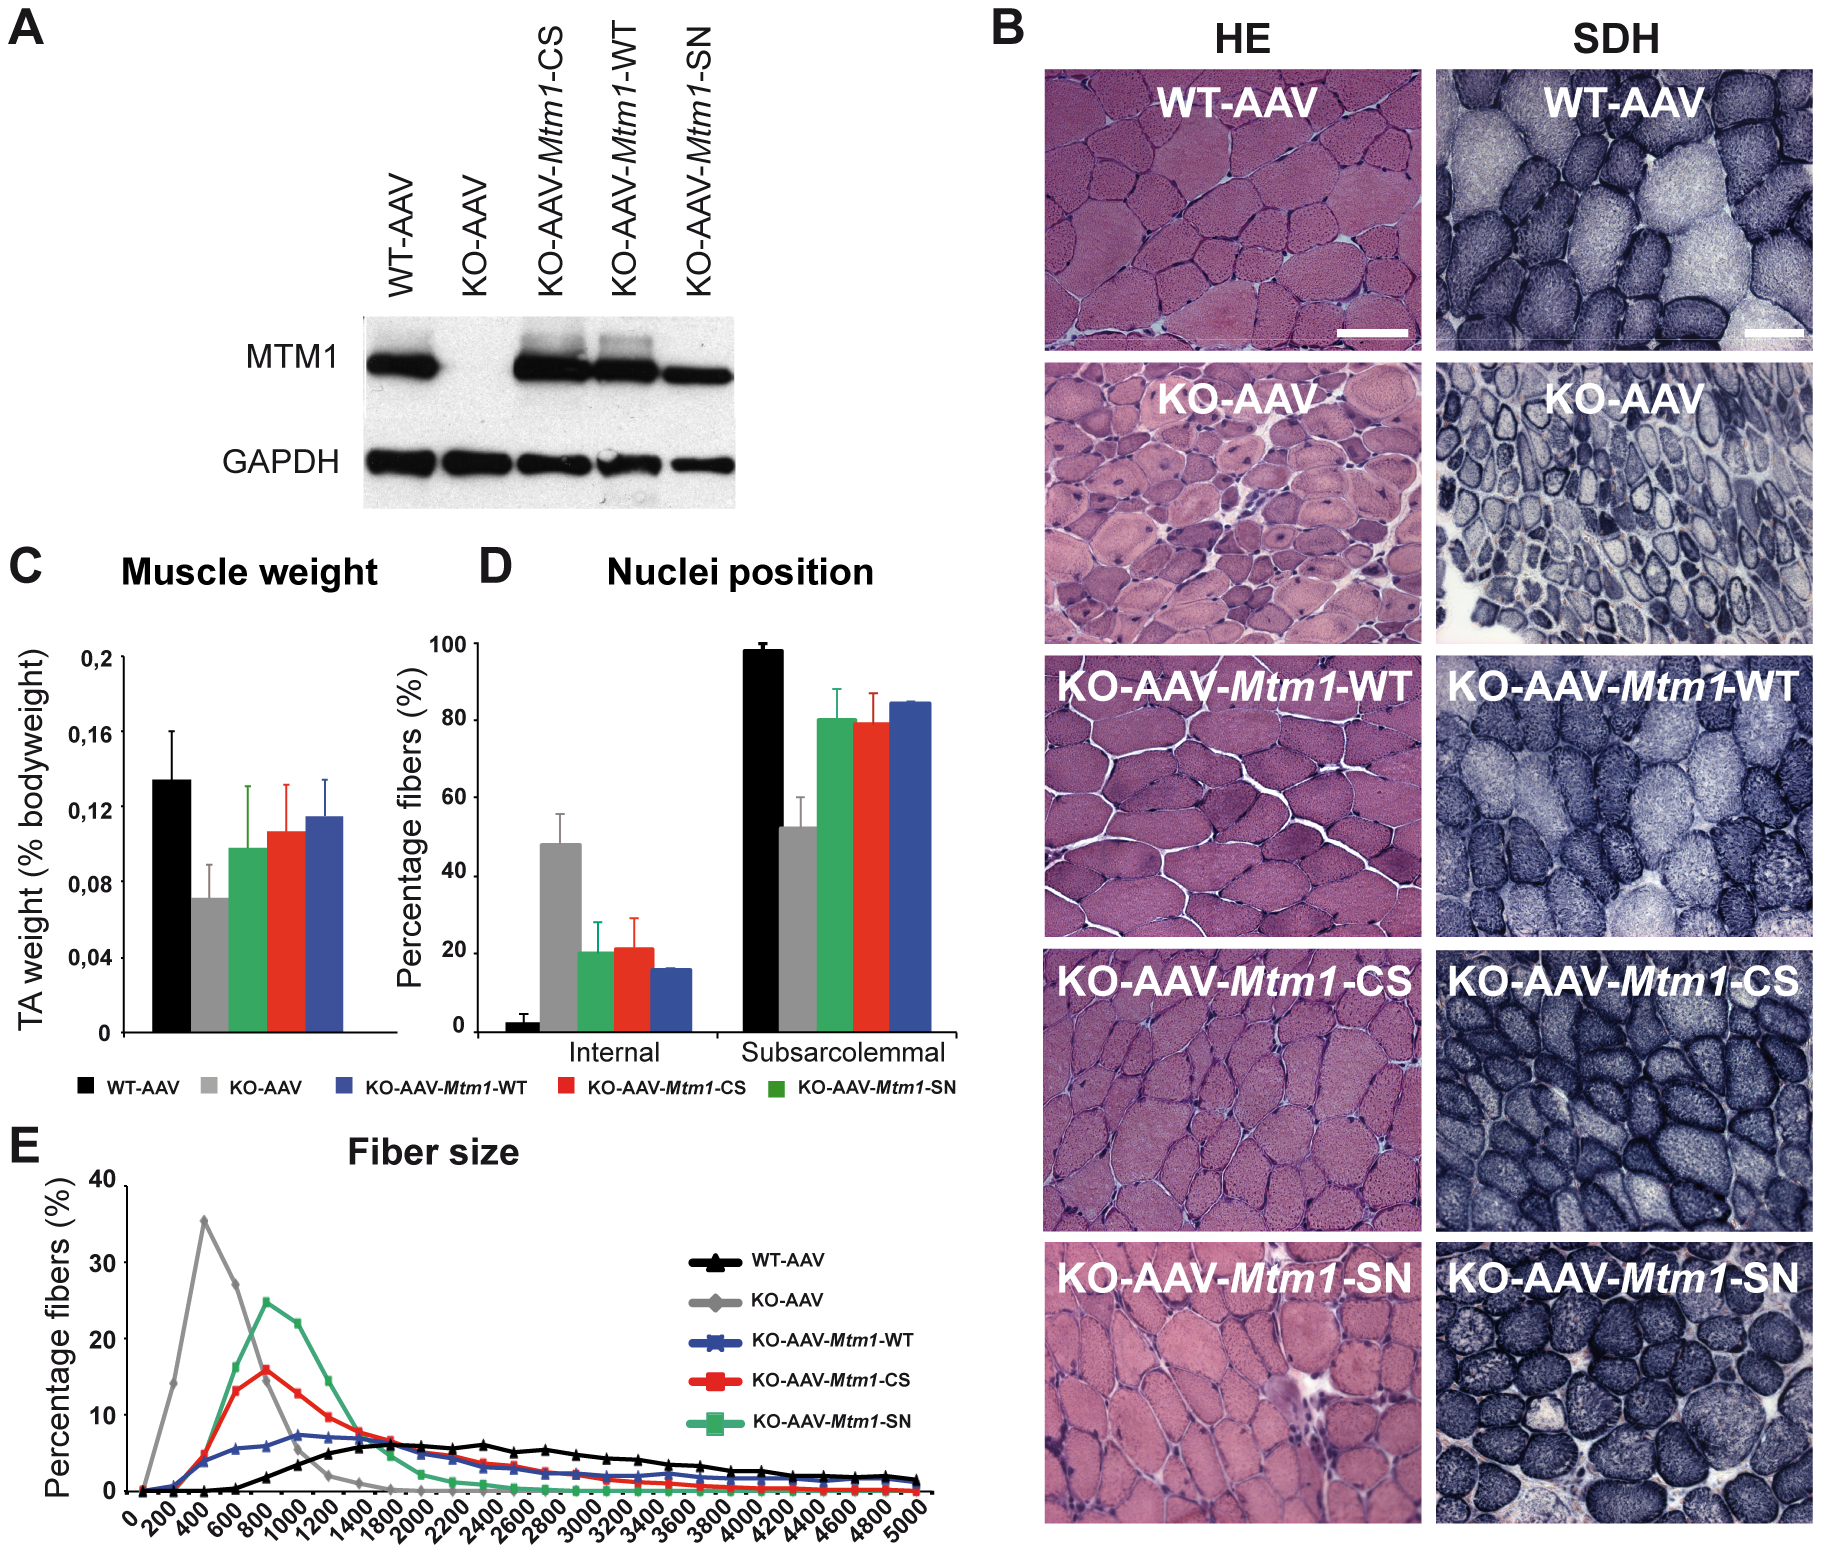 Amelioration of muscle atrophy and fiber hypotrophy in a murine model of centronuclear myopathy by AAV–mediated expression of two phosphatase-inactive myotubularin mutants MTM1<sup>C375S</sup> and MTM1<sup>S376N</sup>.